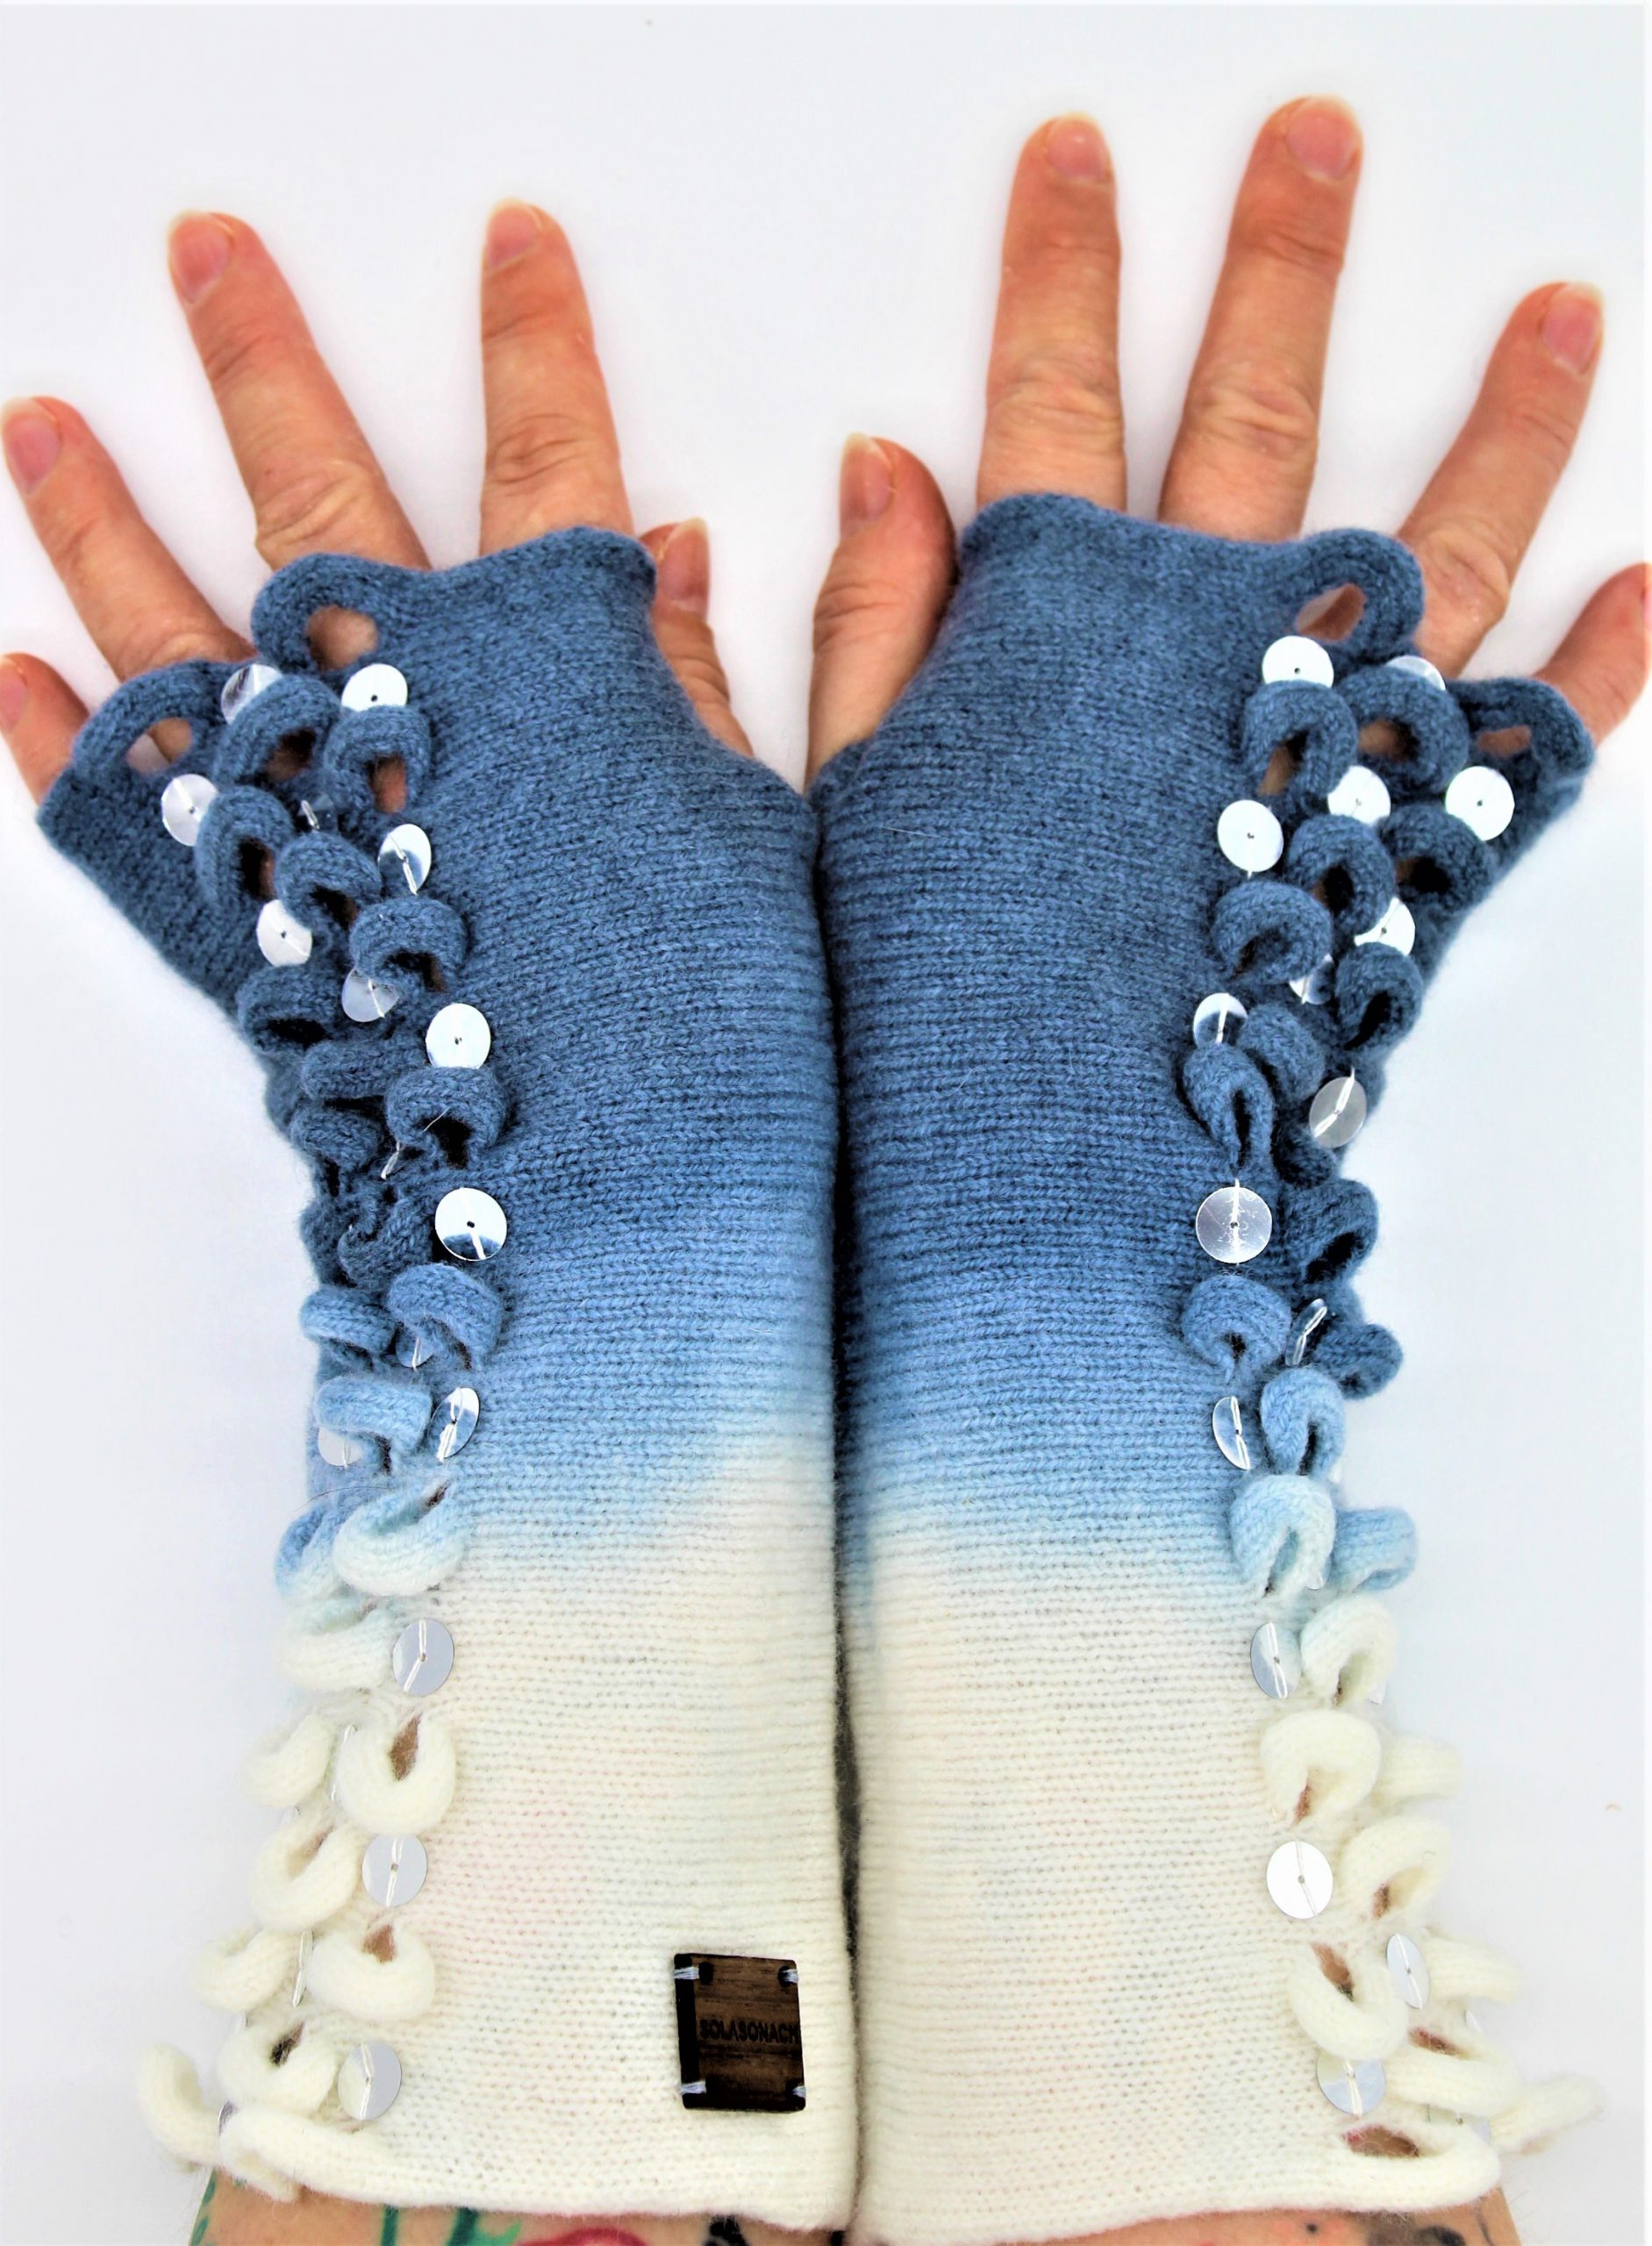 Shop All Hand Warmers